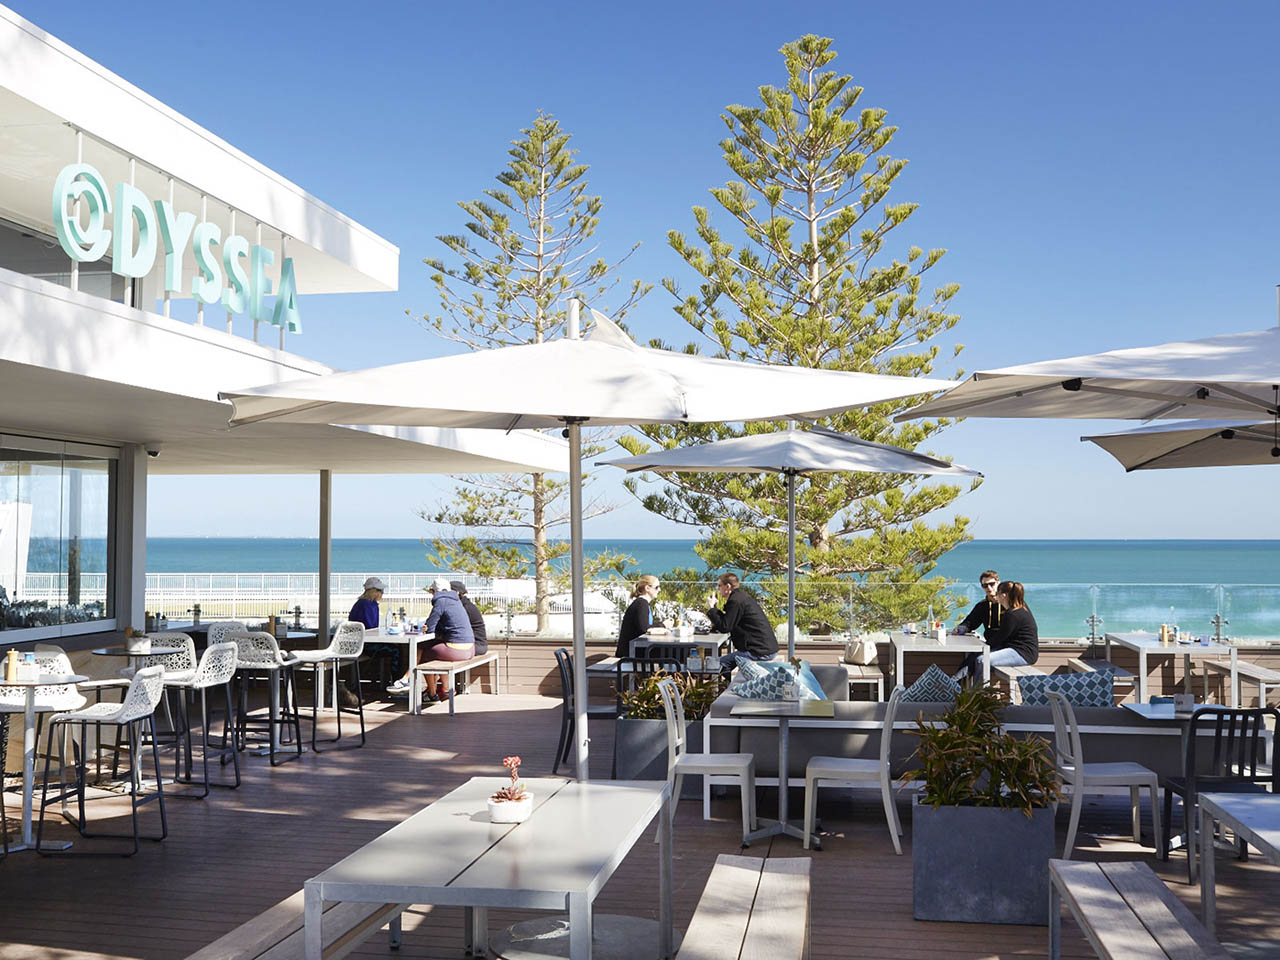 Odyssea's Terrace With Tables, Chairs, Umbrella Few Guests And Sea View